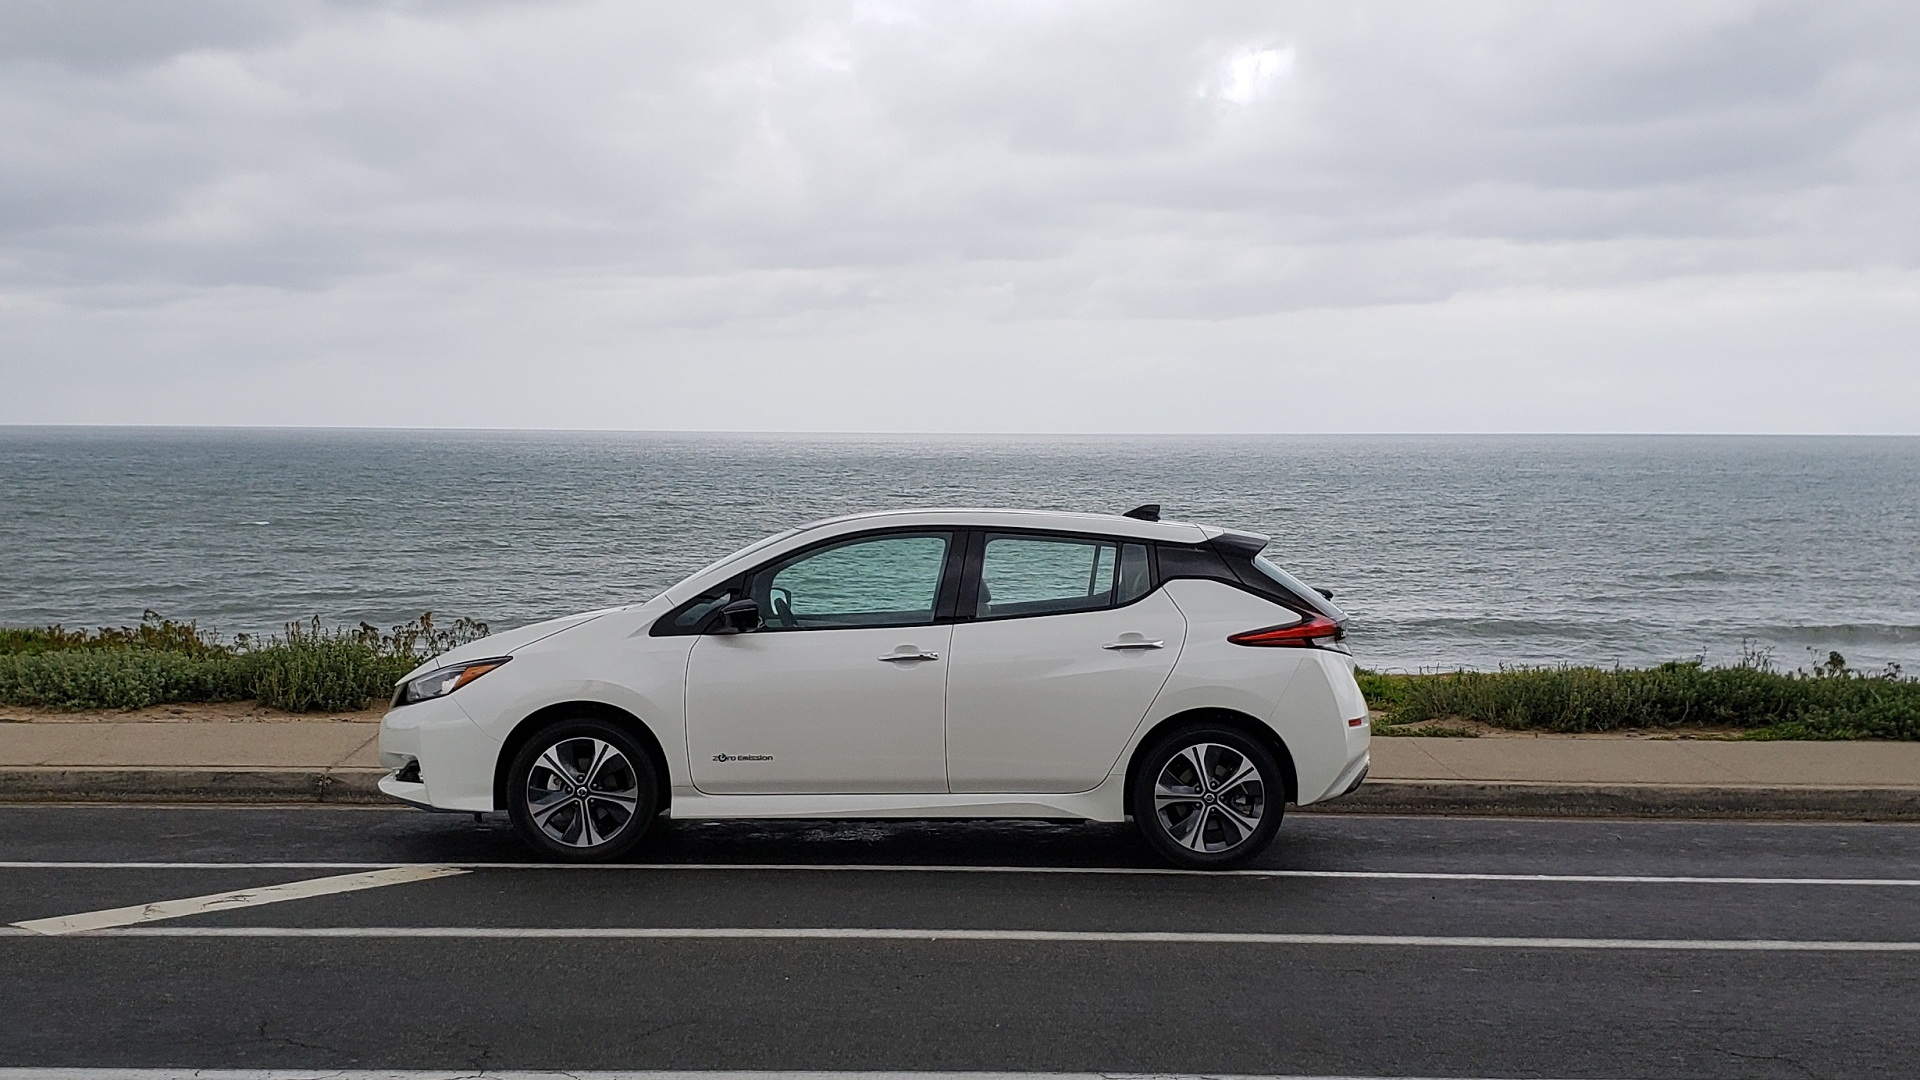 2019 Nissan Leaf Plus, San Diego area, Feb 2019